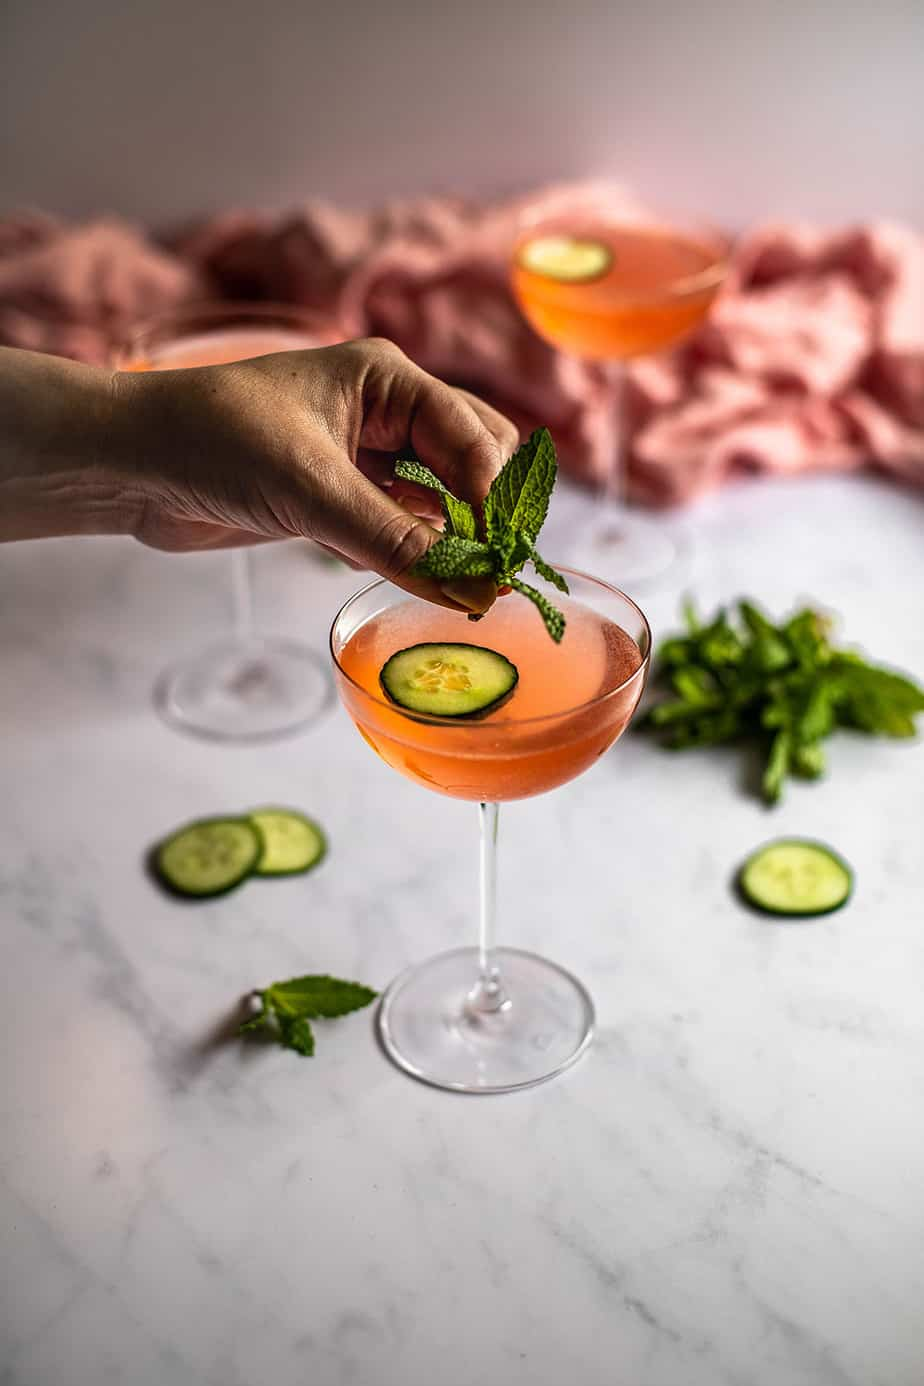 a hand getting ready to place a sprig of fresh mint into a couple glass filled with pink liquid and garnished with a cucumber slice